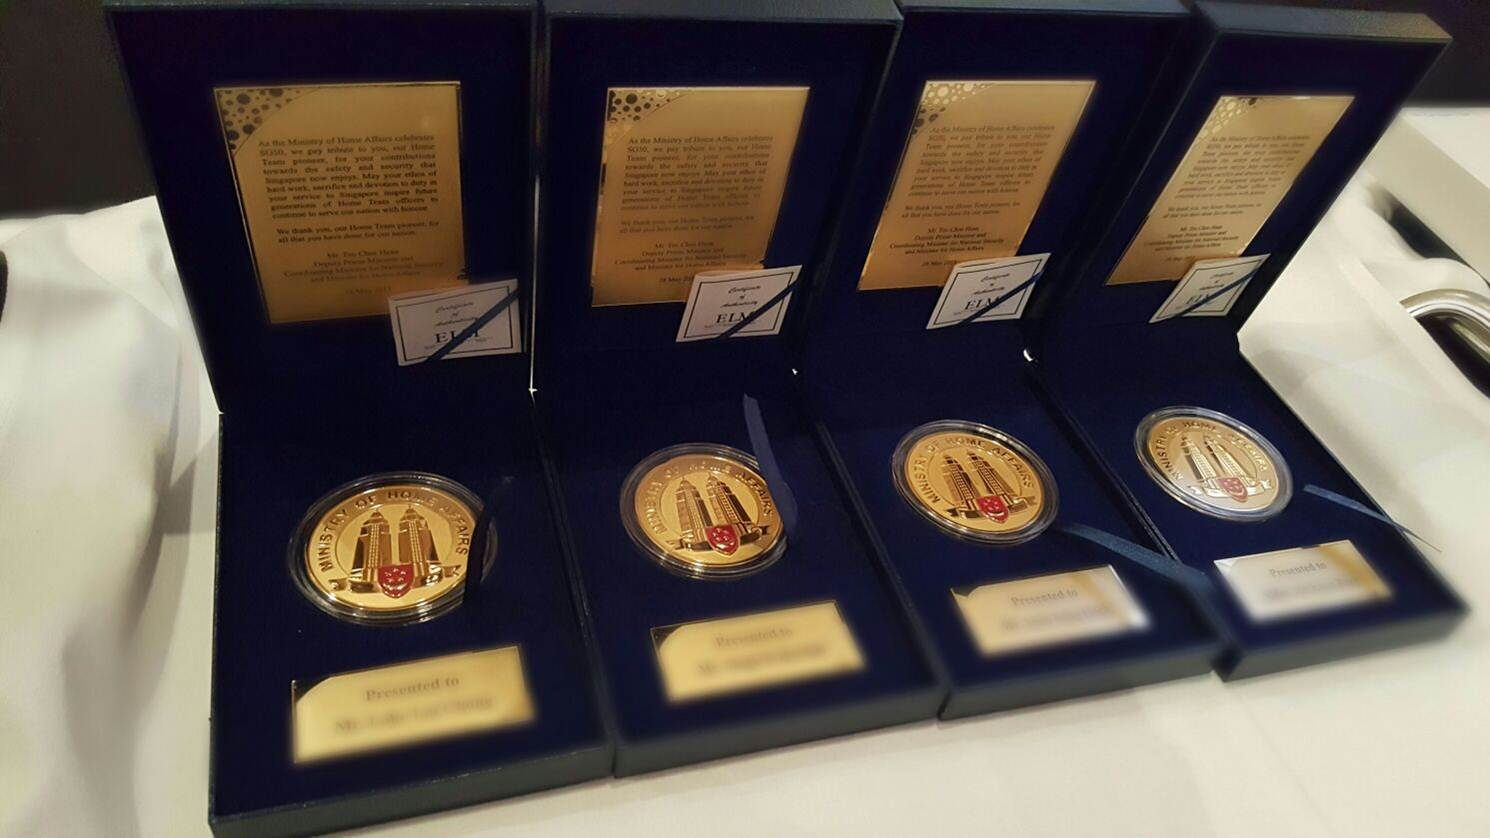 Photo 2: SG50 Medallions given out to CNB pioneers during the CNB Appreciation Dinner 2015